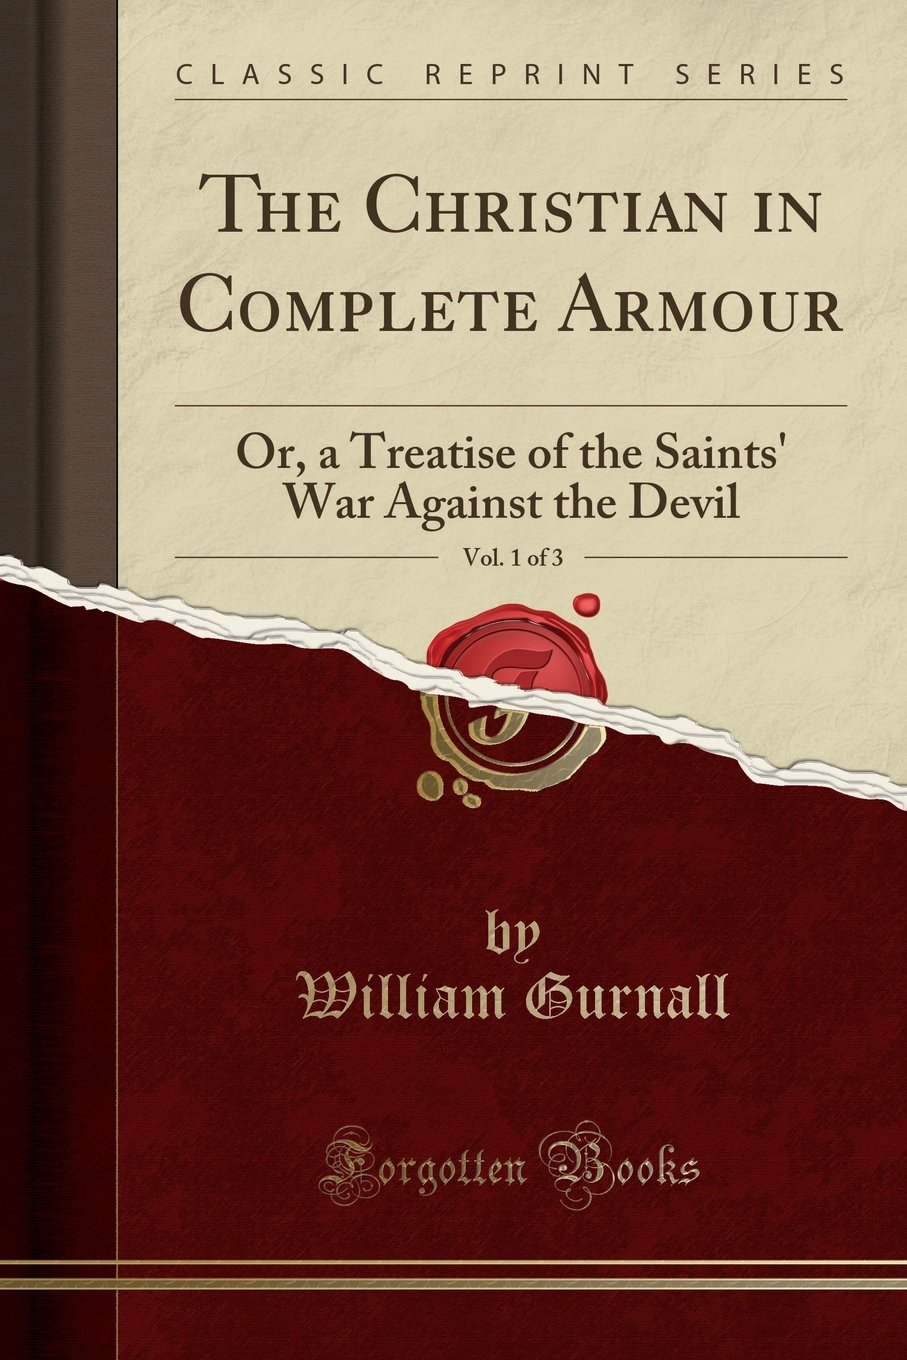 Download The Christian in Complete Armour, Vol. 1 of 3: Or, a Treatise of the Saints' War Against the Devil (Classic Reprint) pdf